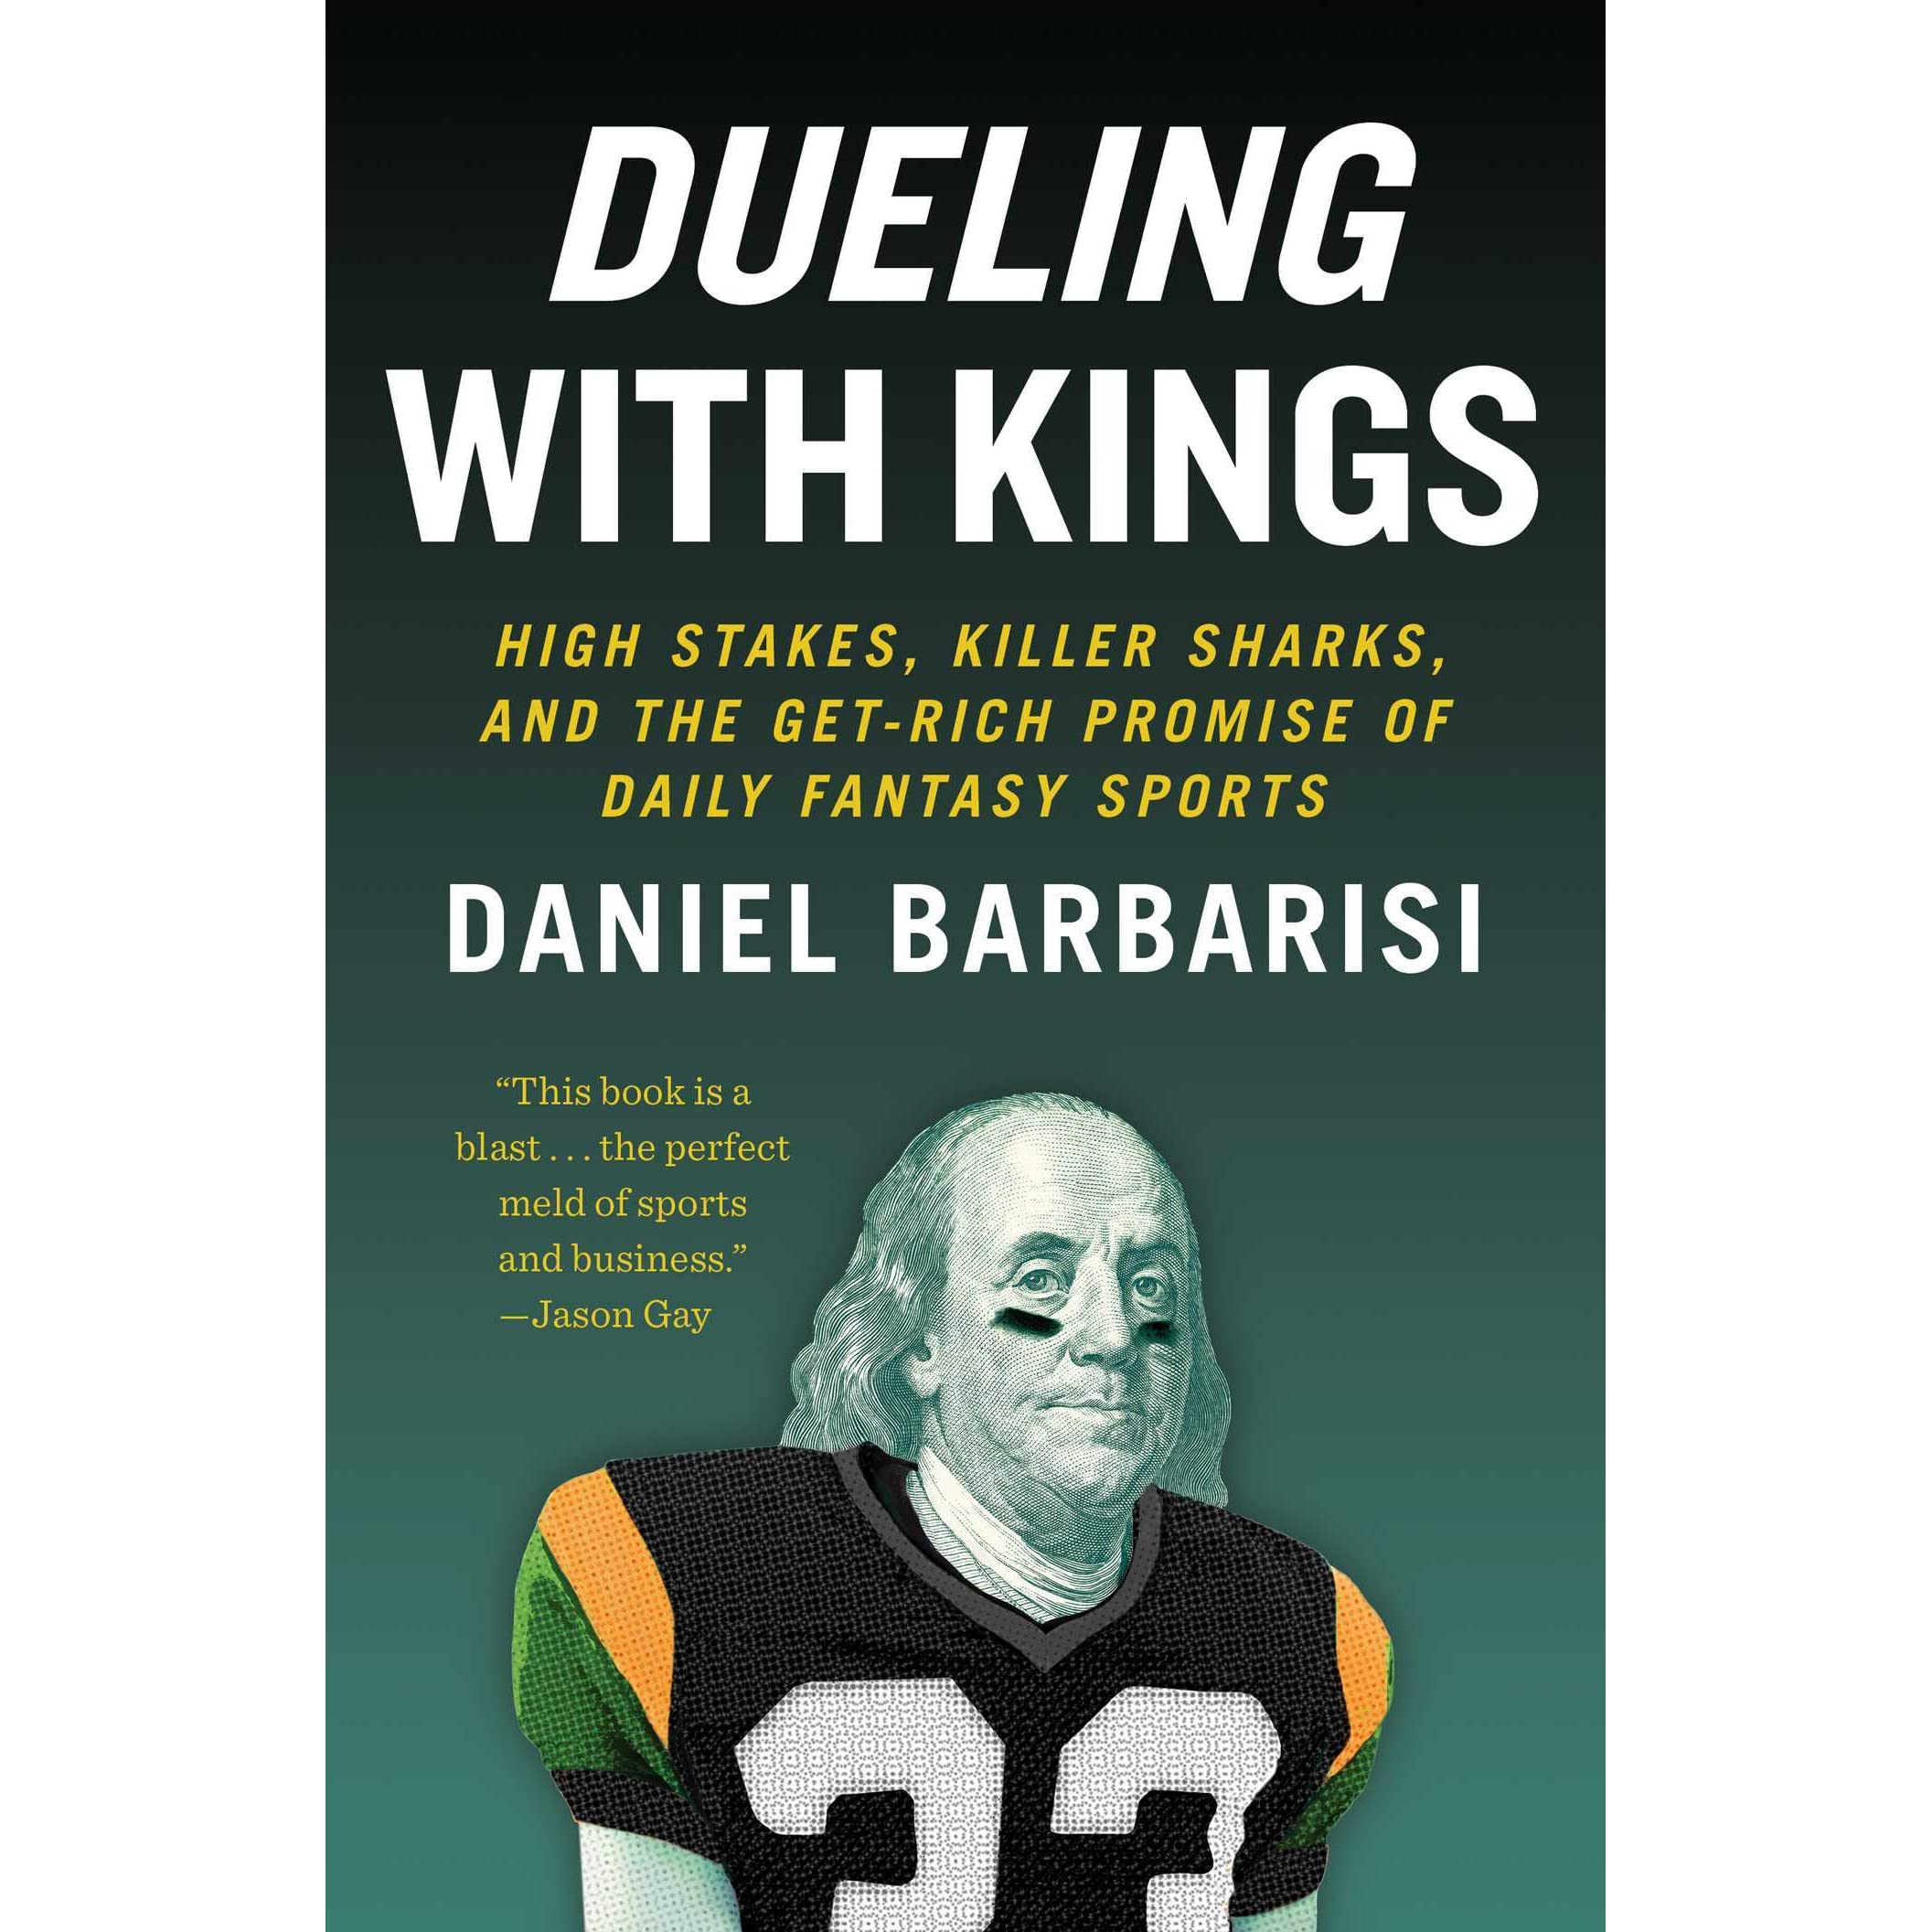 Dueling with kings high stakes killer sharks and the get rich dueling with kings high stakes killer sharks and the get rich promise of daily fantasy sports by daniel barbarisi fandeluxe Gallery